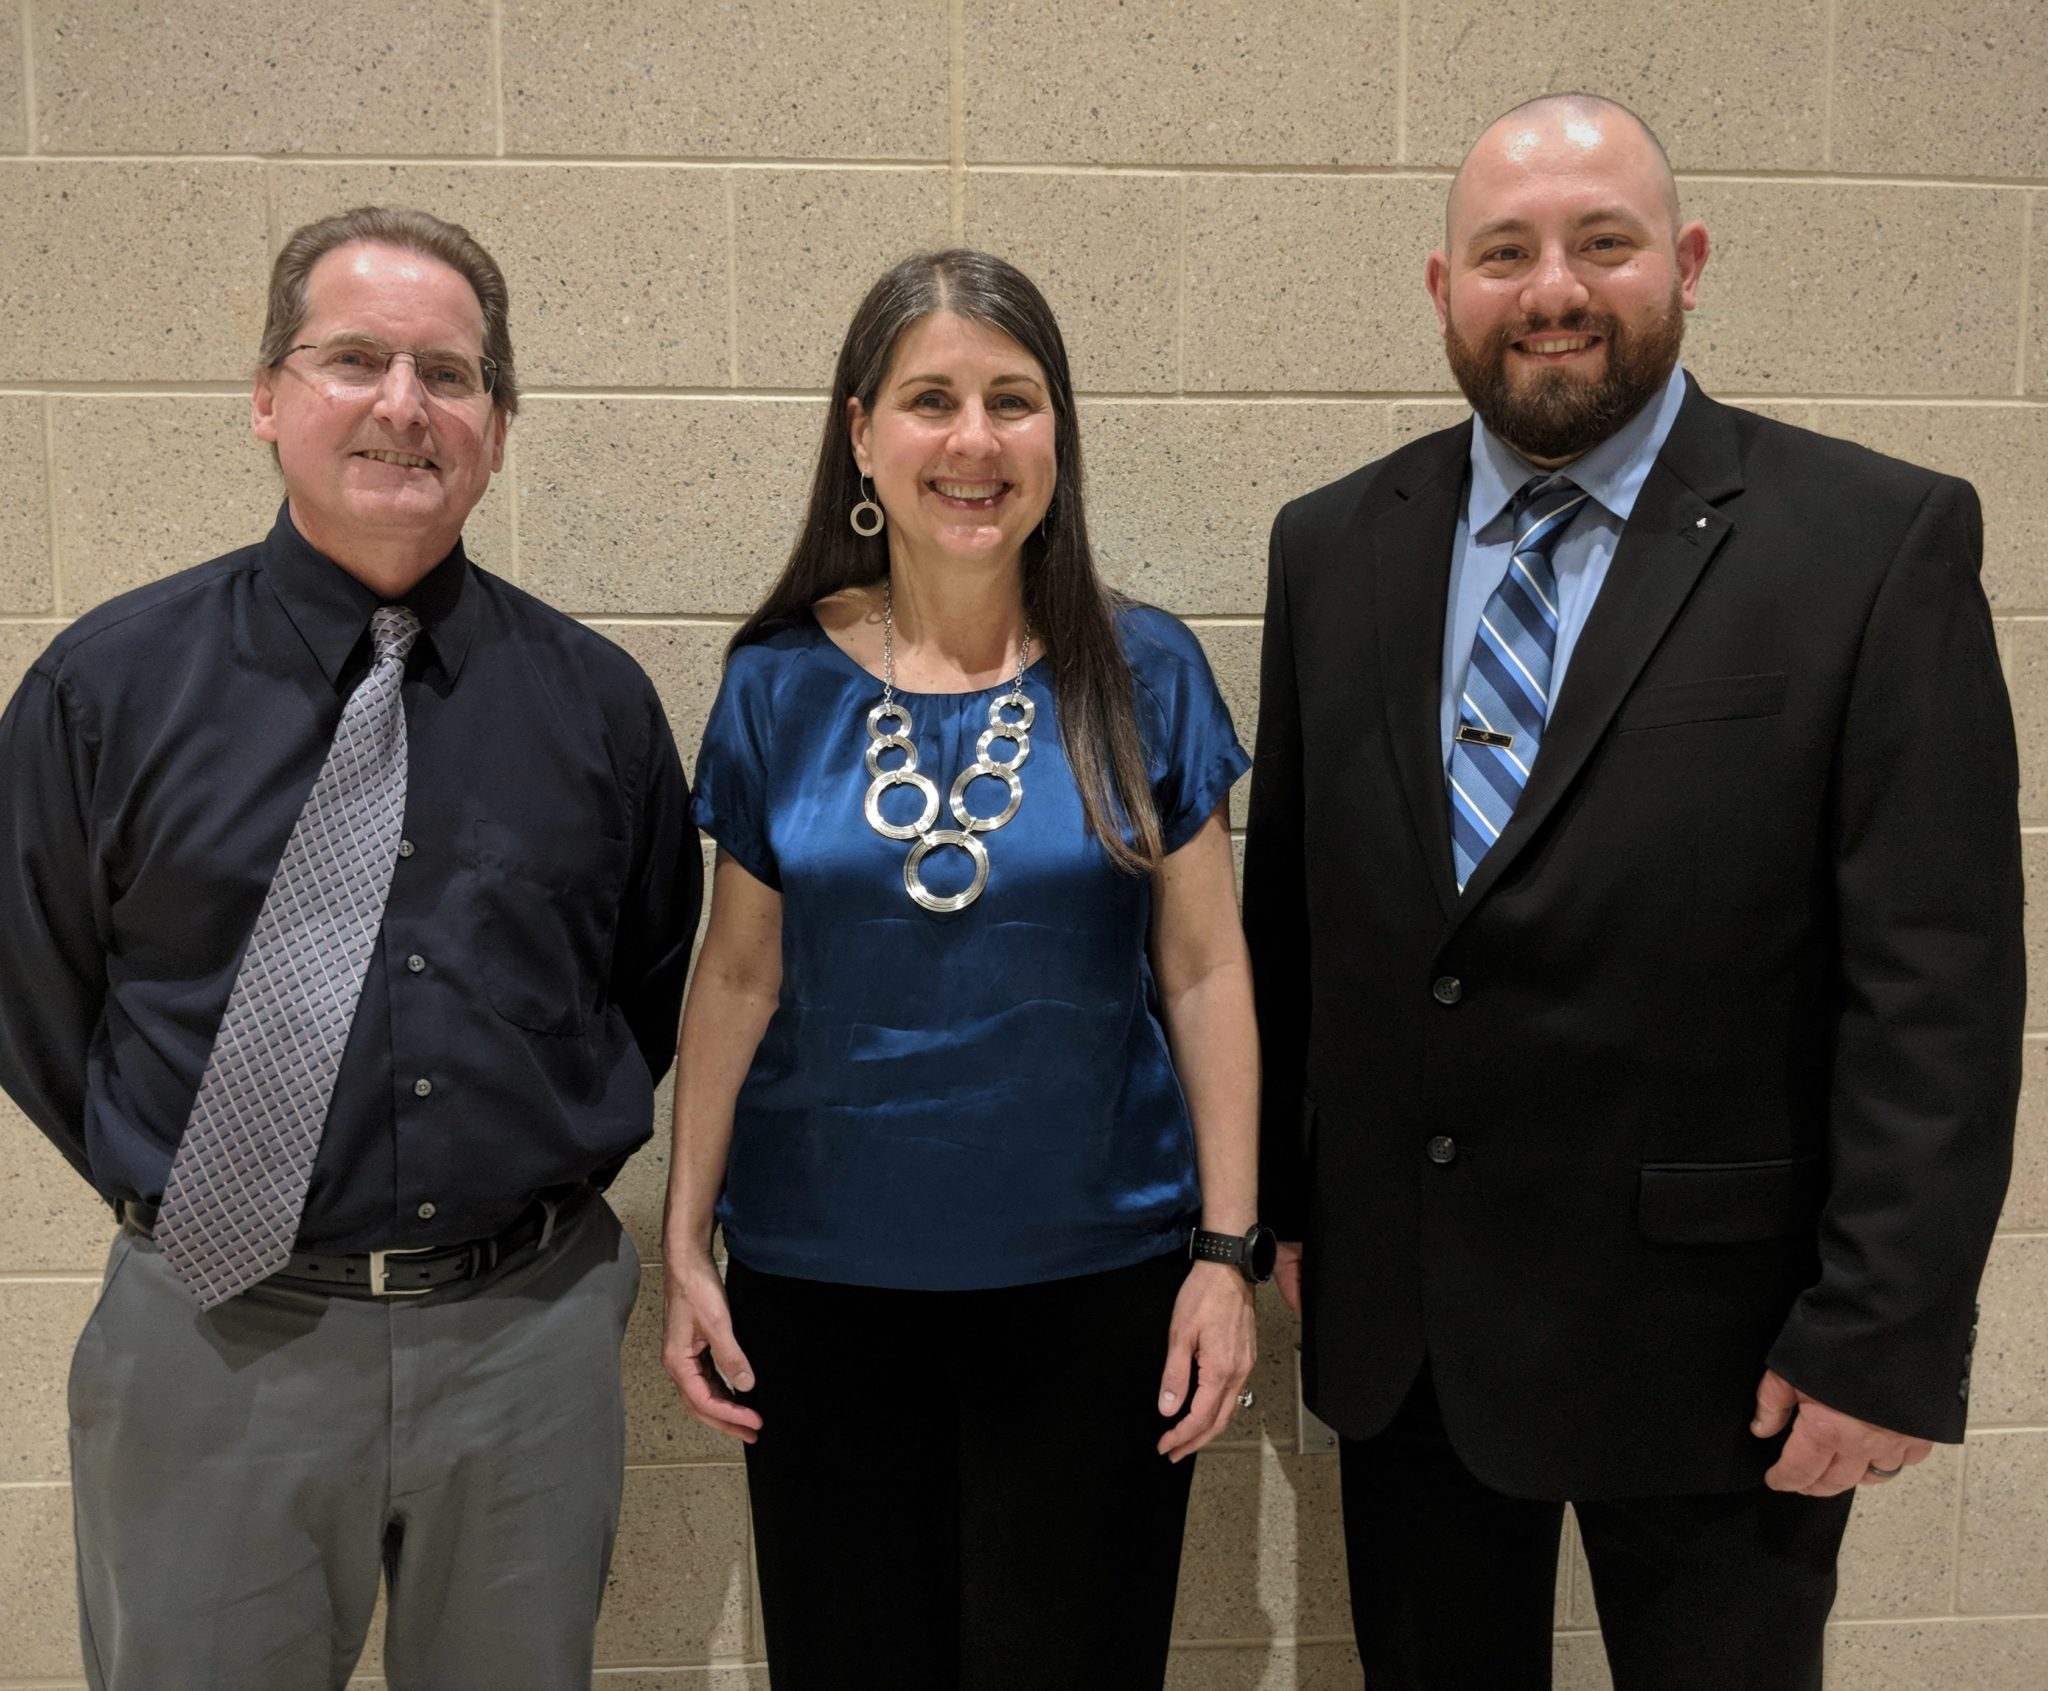 Outstanding employees James McGlynn, Lisa Roth Walter and David Sellers.